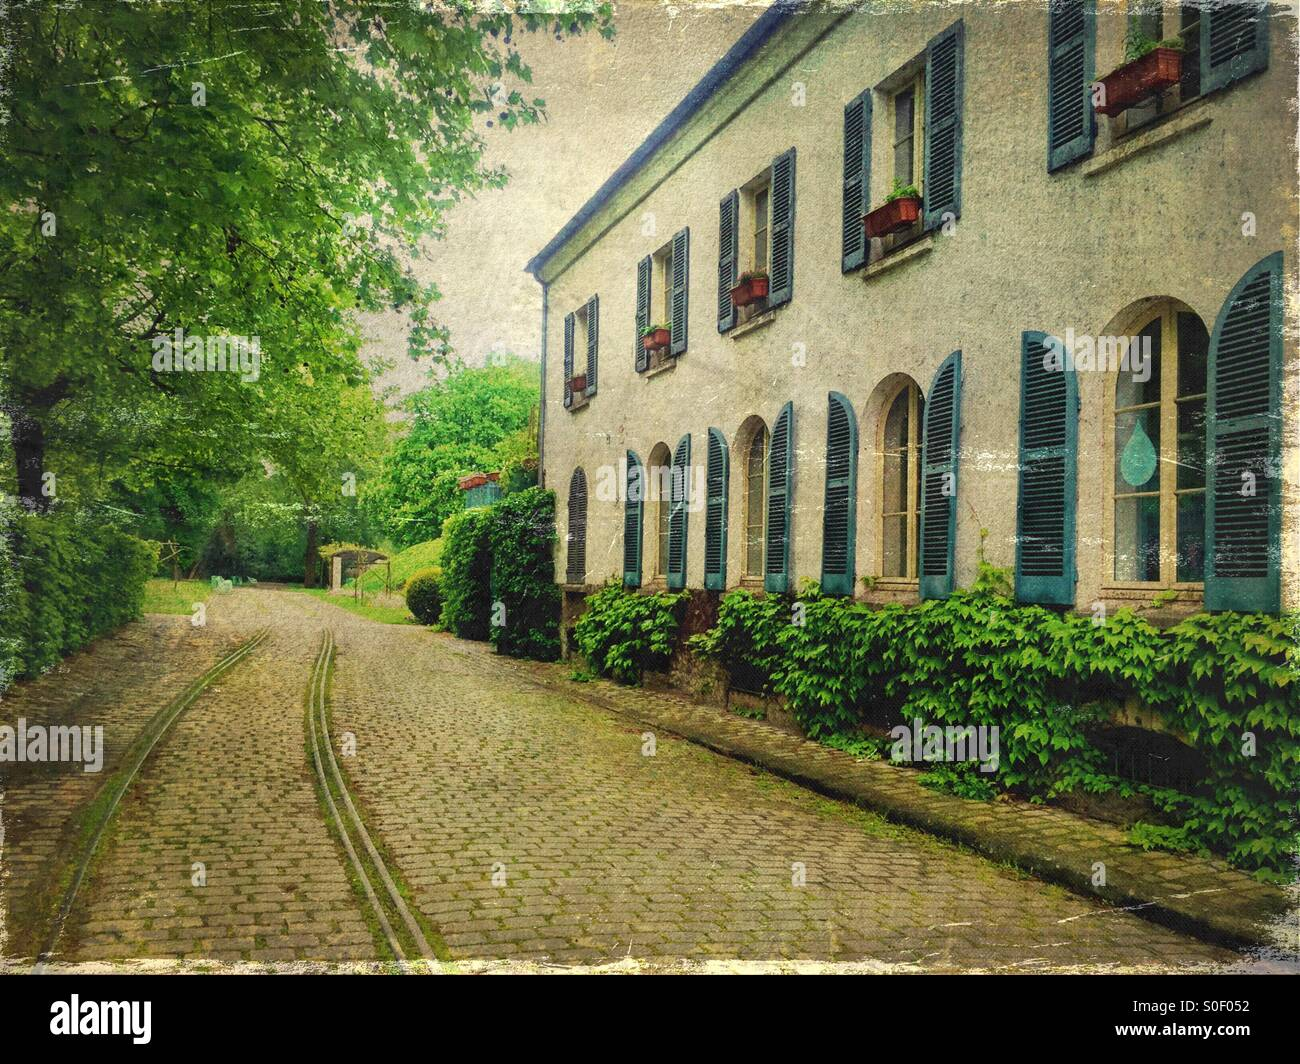 View of Maison du Jardinage with pretty blue shutters at Parc de Bercy in Paris, France. Brick pavement, trees and Stock Photo